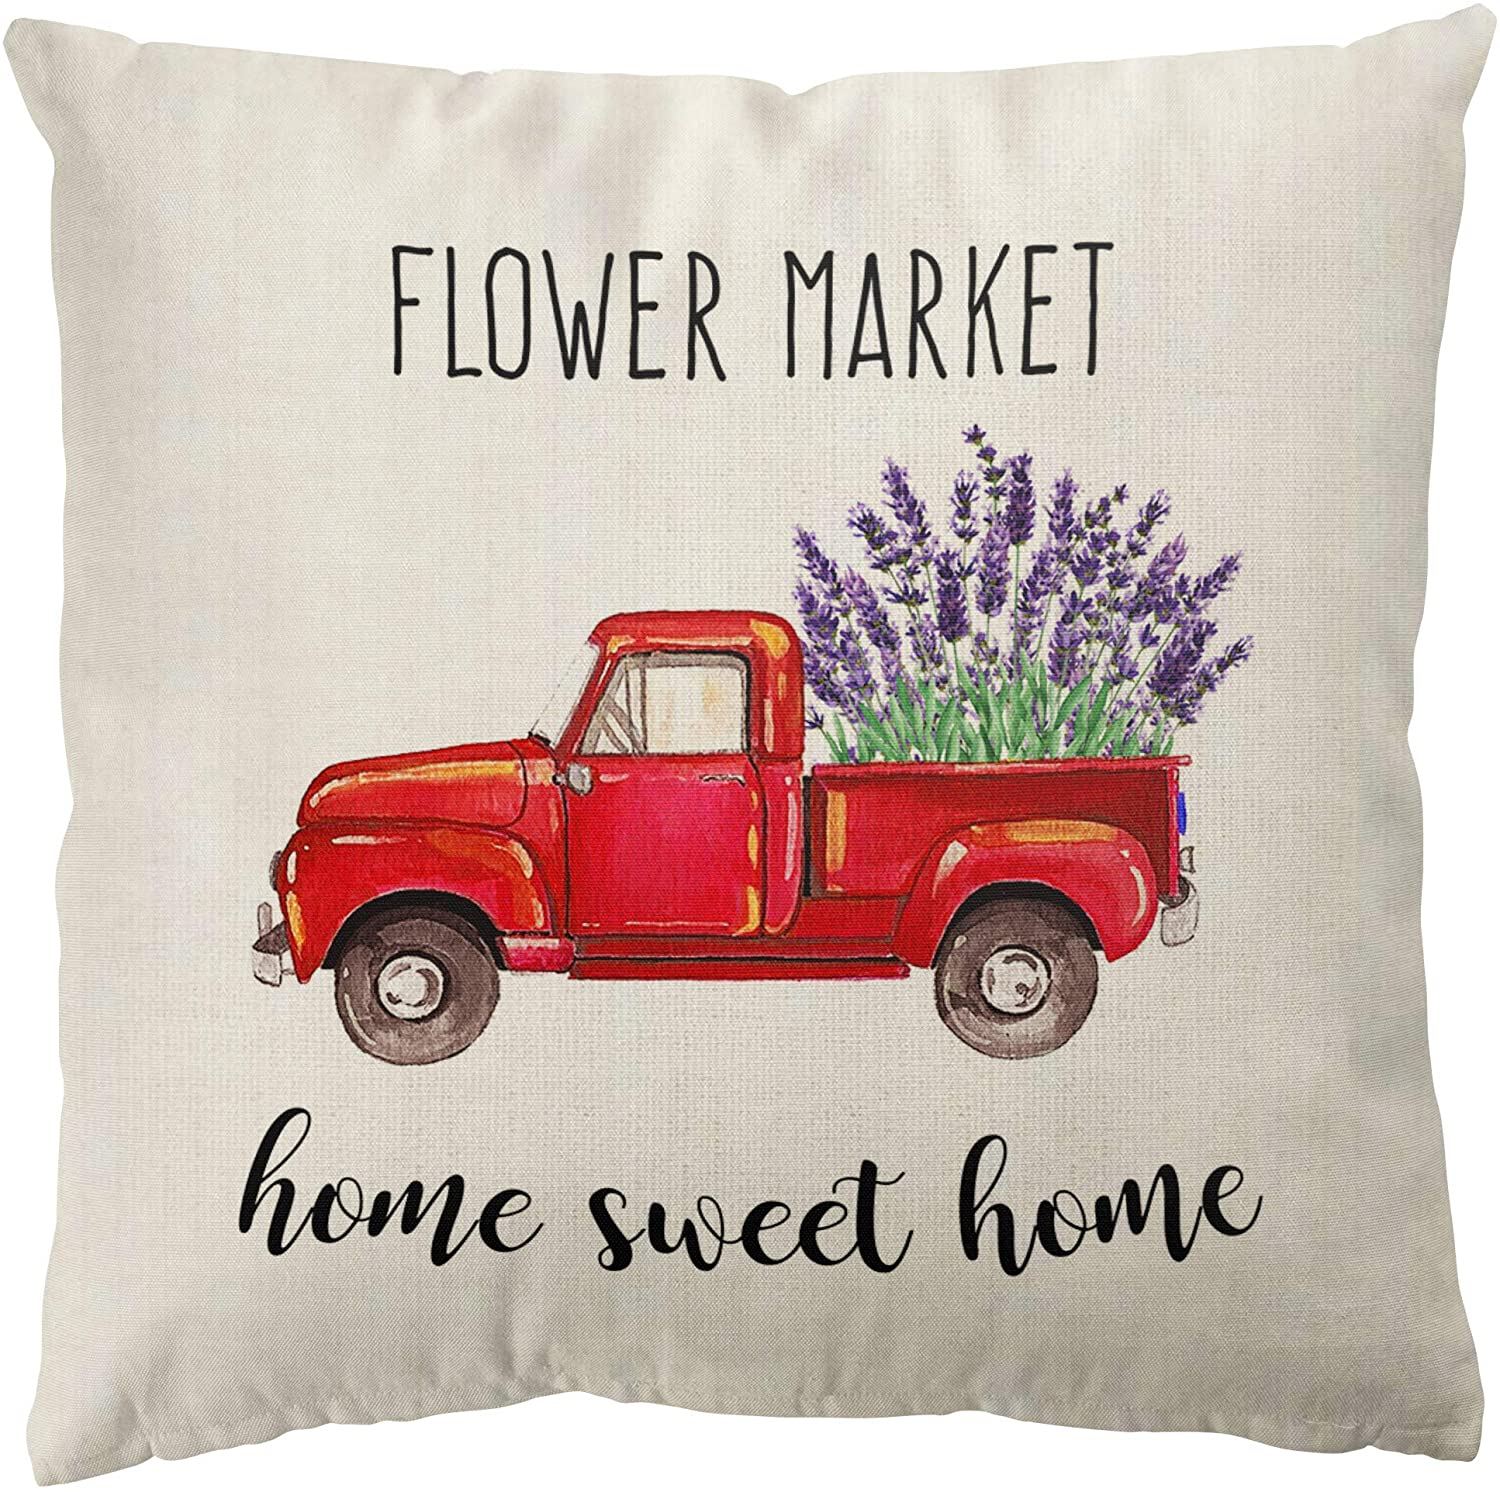 ORTIGIA Flower Market Throw Pillow Cover,Red Truck Loads of Lavender Farmhouse Rustic Linen Home Decorative Throw Pillowcase, Home Sweet Home 18 x 18 Inch Cute Cushion Protector for Sofa Couch